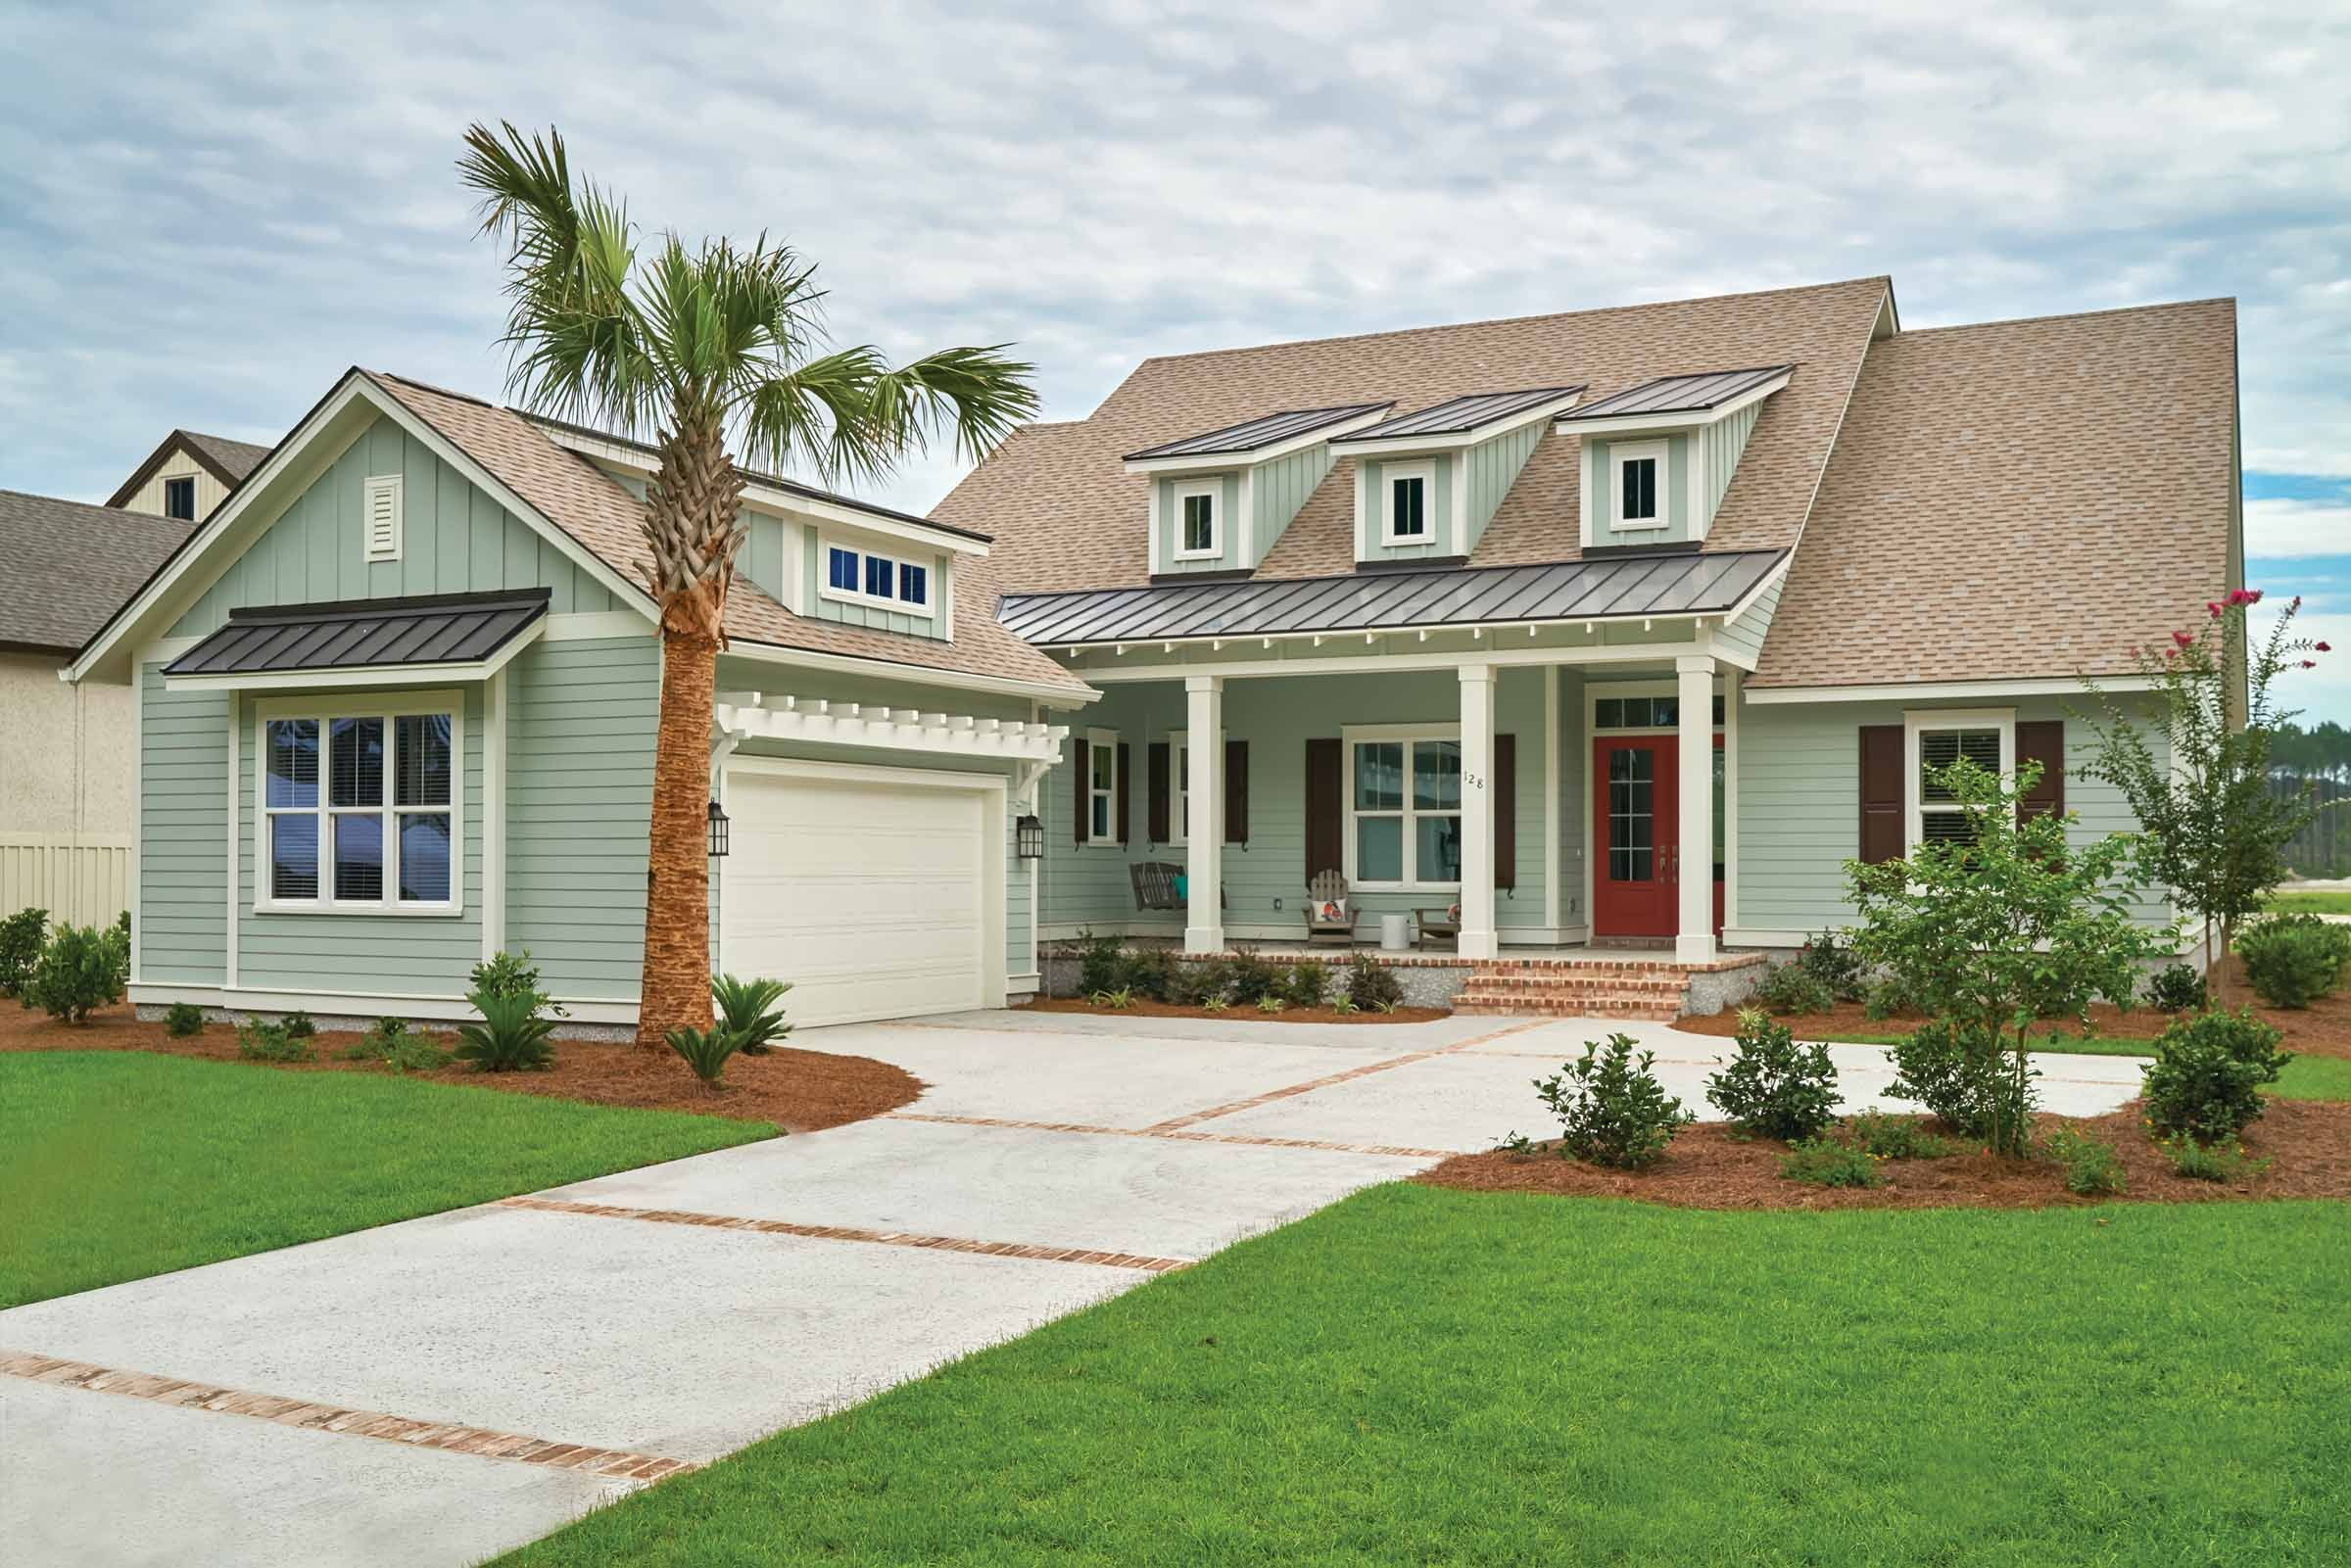 This is Actually the Completely New Picture Of Patio Homes for Sale Florida